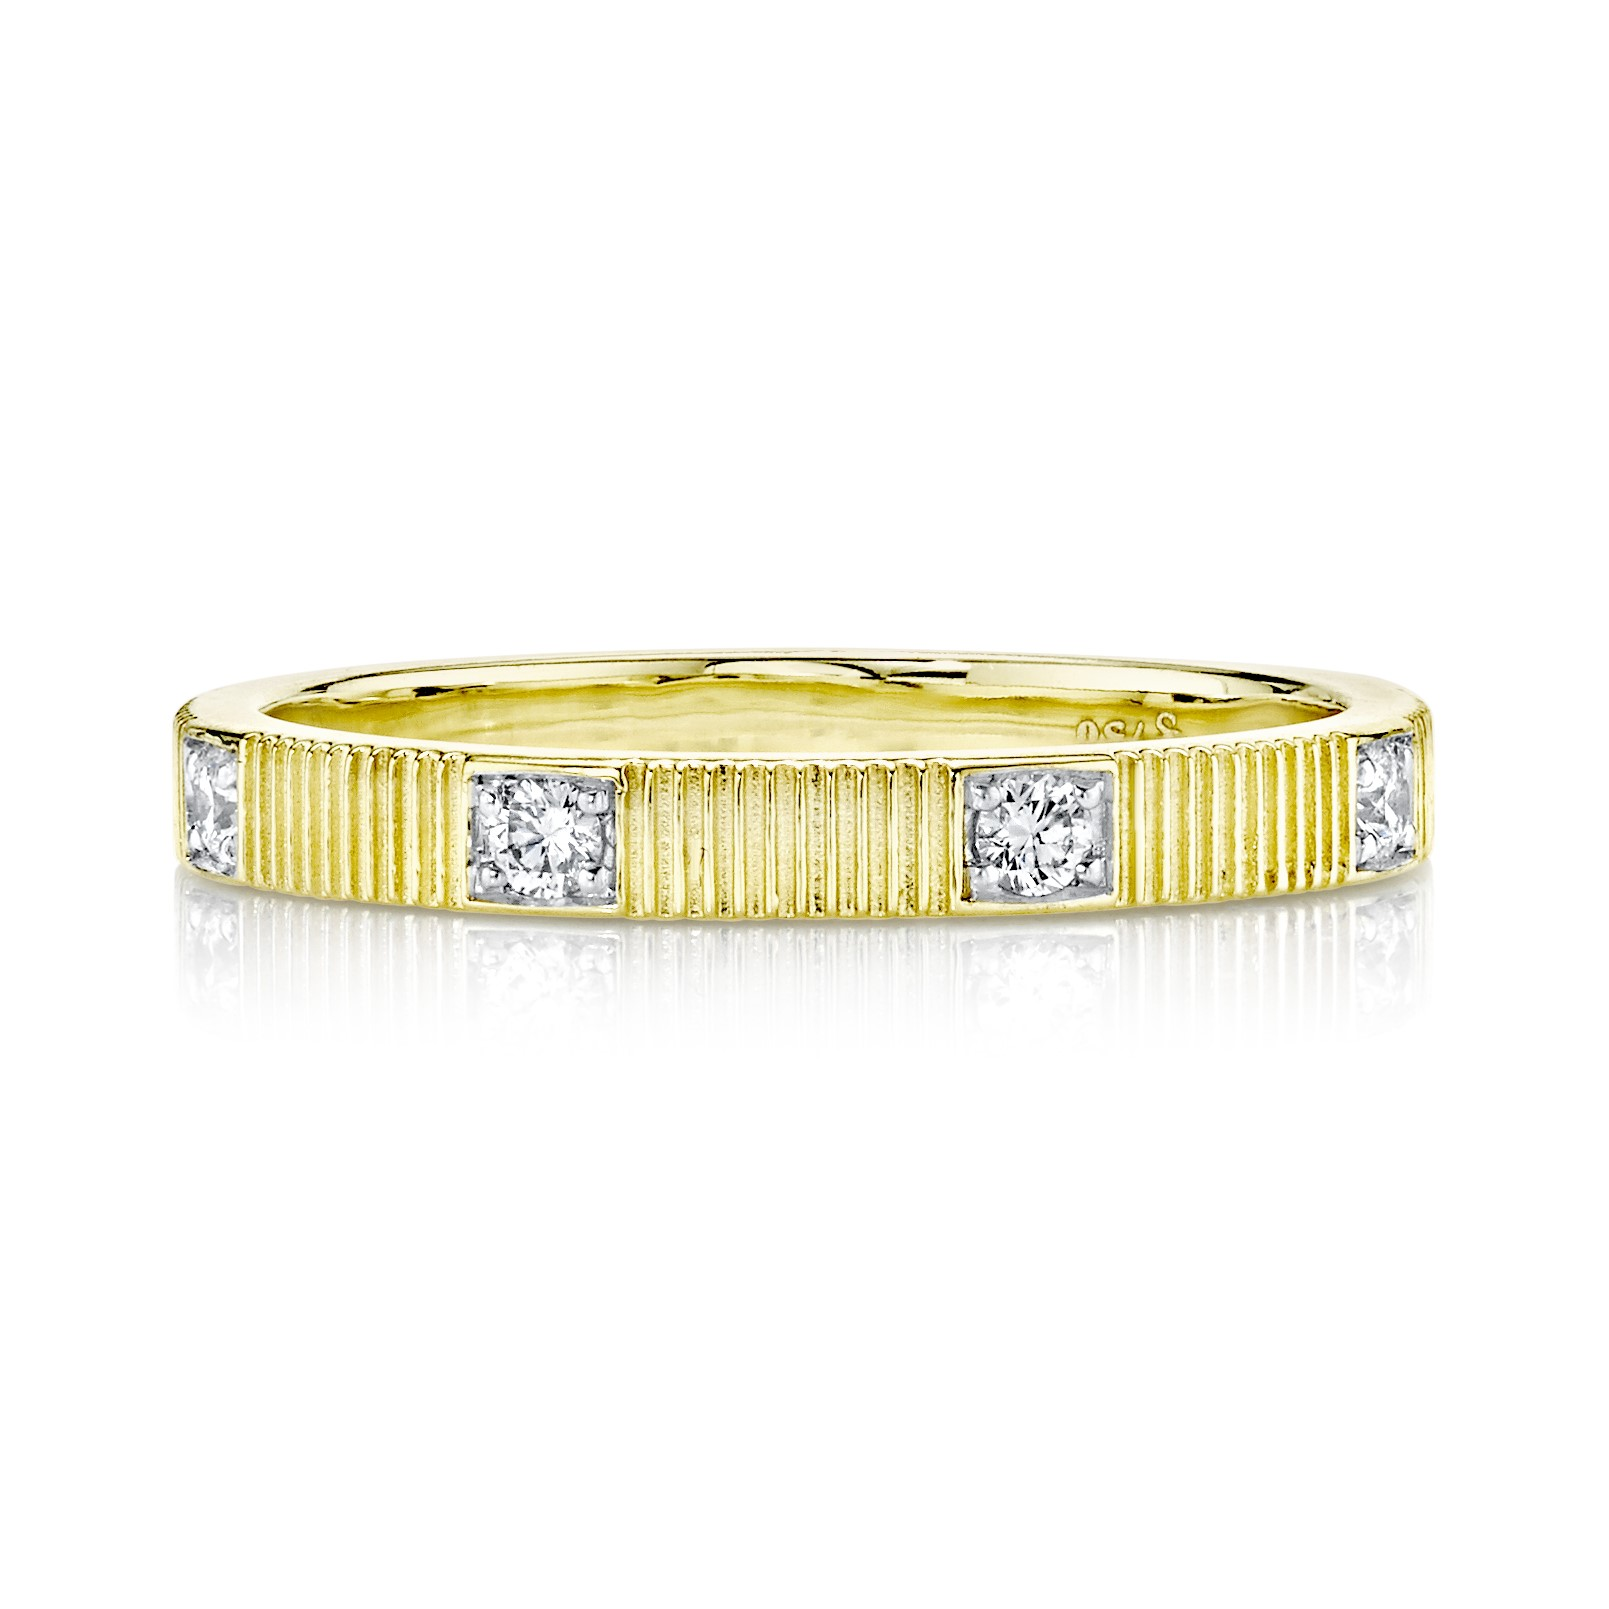 Sloane Street 18K Yellow Gold .18cts  Diamonds Gold Ring with Stones R022F-WDCB-Y